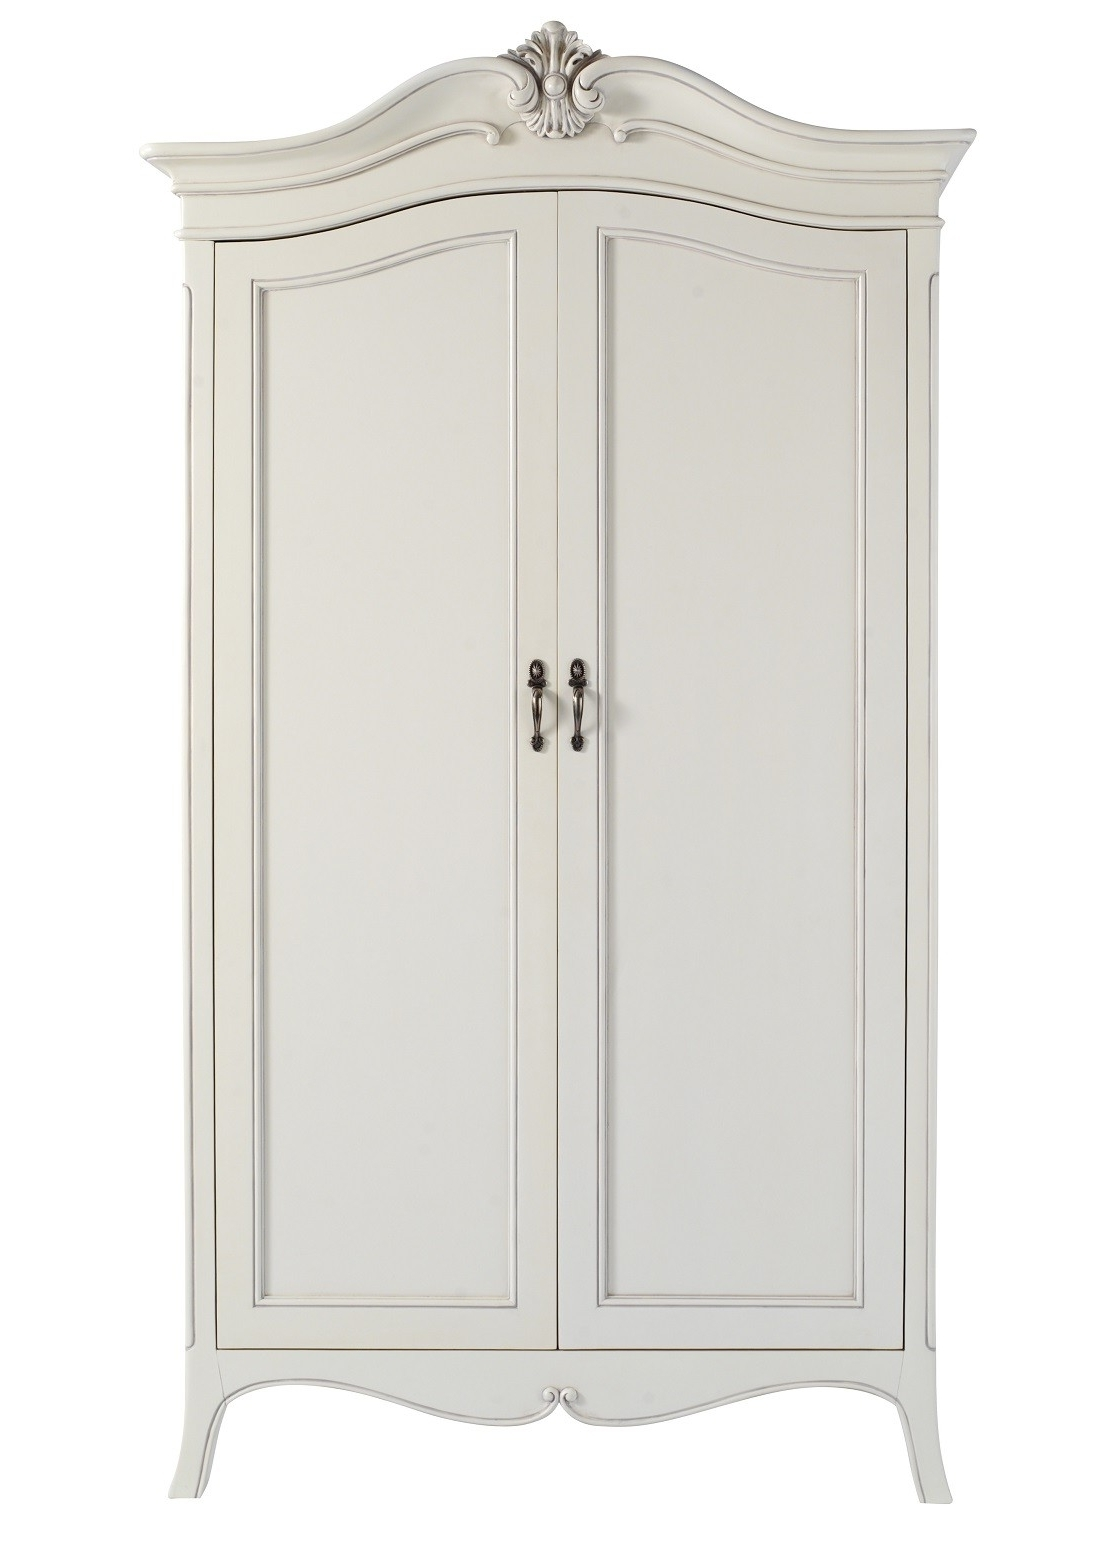 Cream French Wardrobes Intended For Most Recent Louis French Ivory Painted 2 Door Double Wardrobe (View 4 of 15)